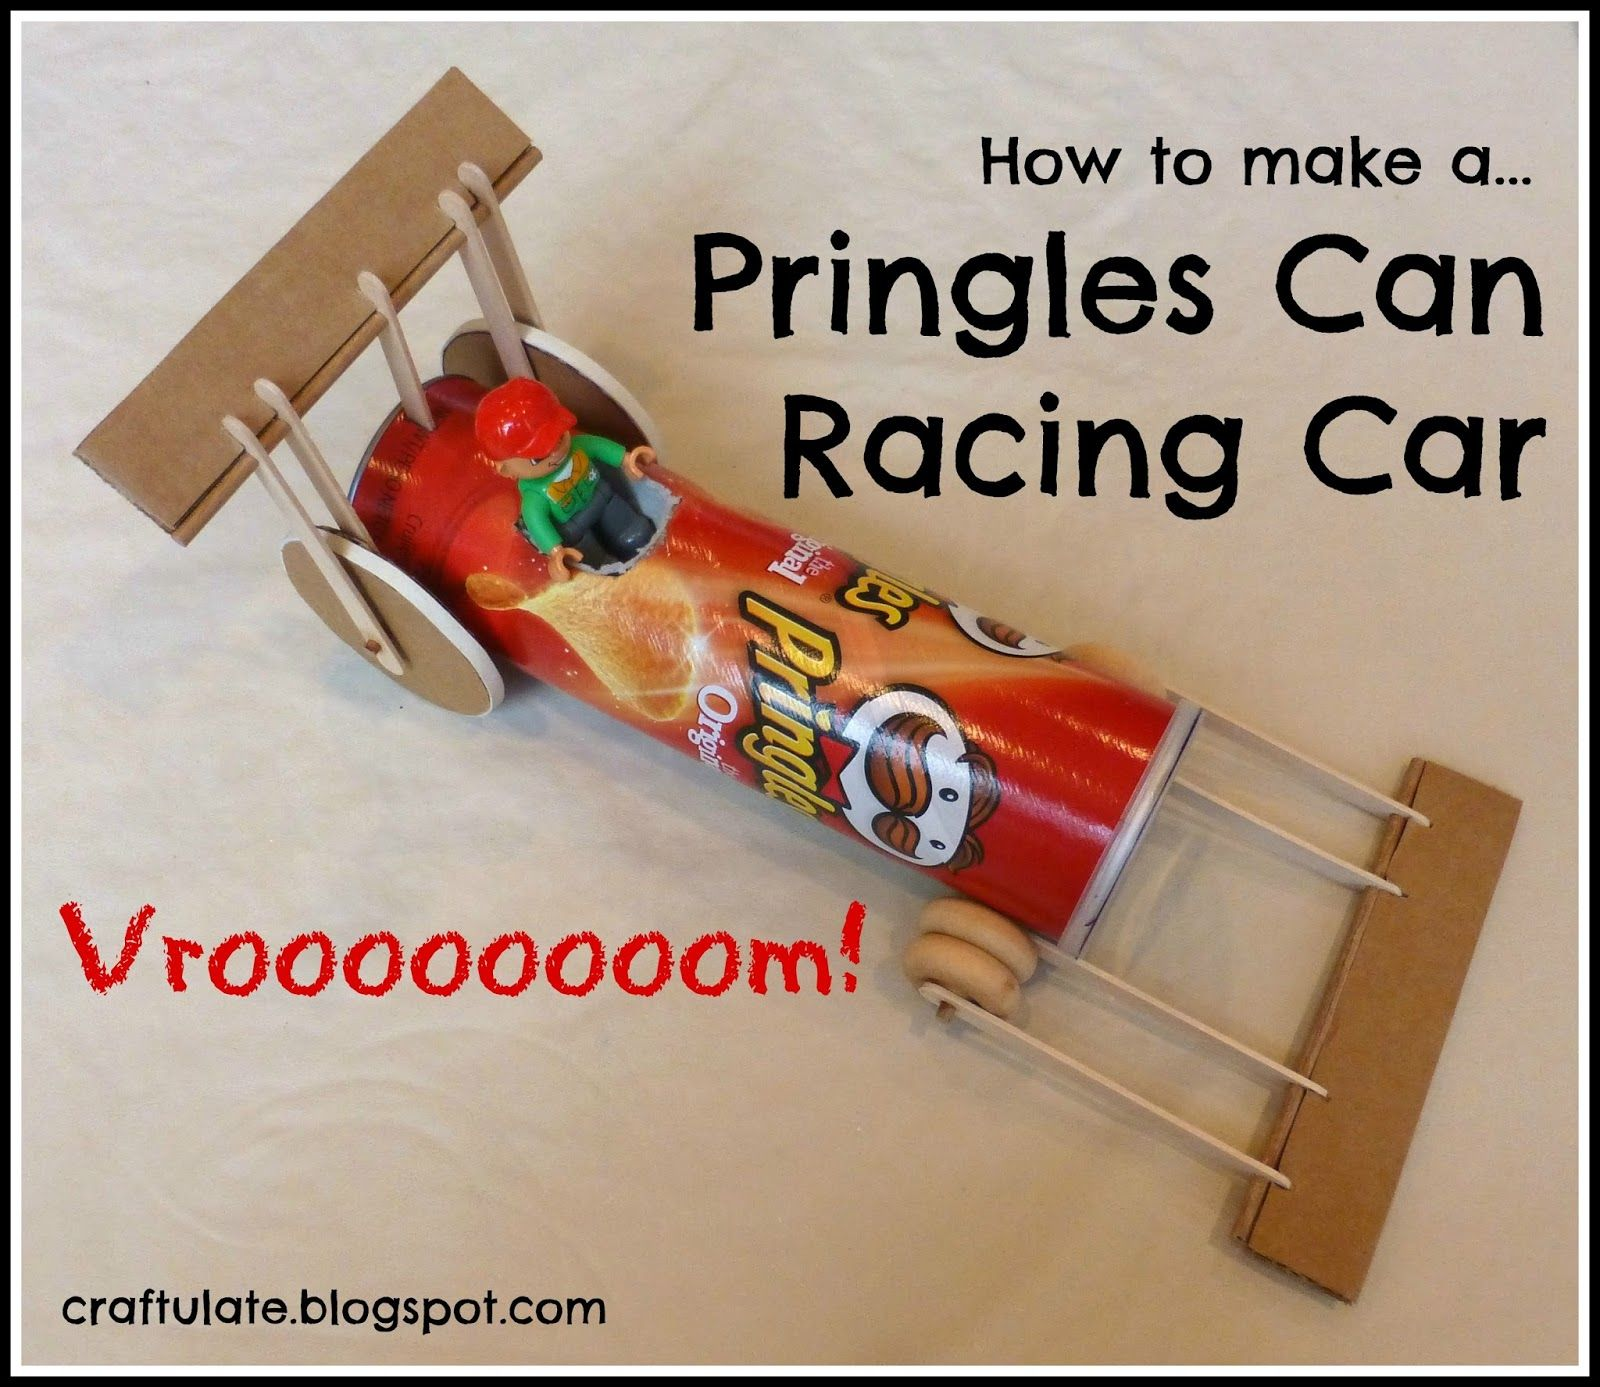 I wanted to make a toy car from a shoebox with wheels that ...